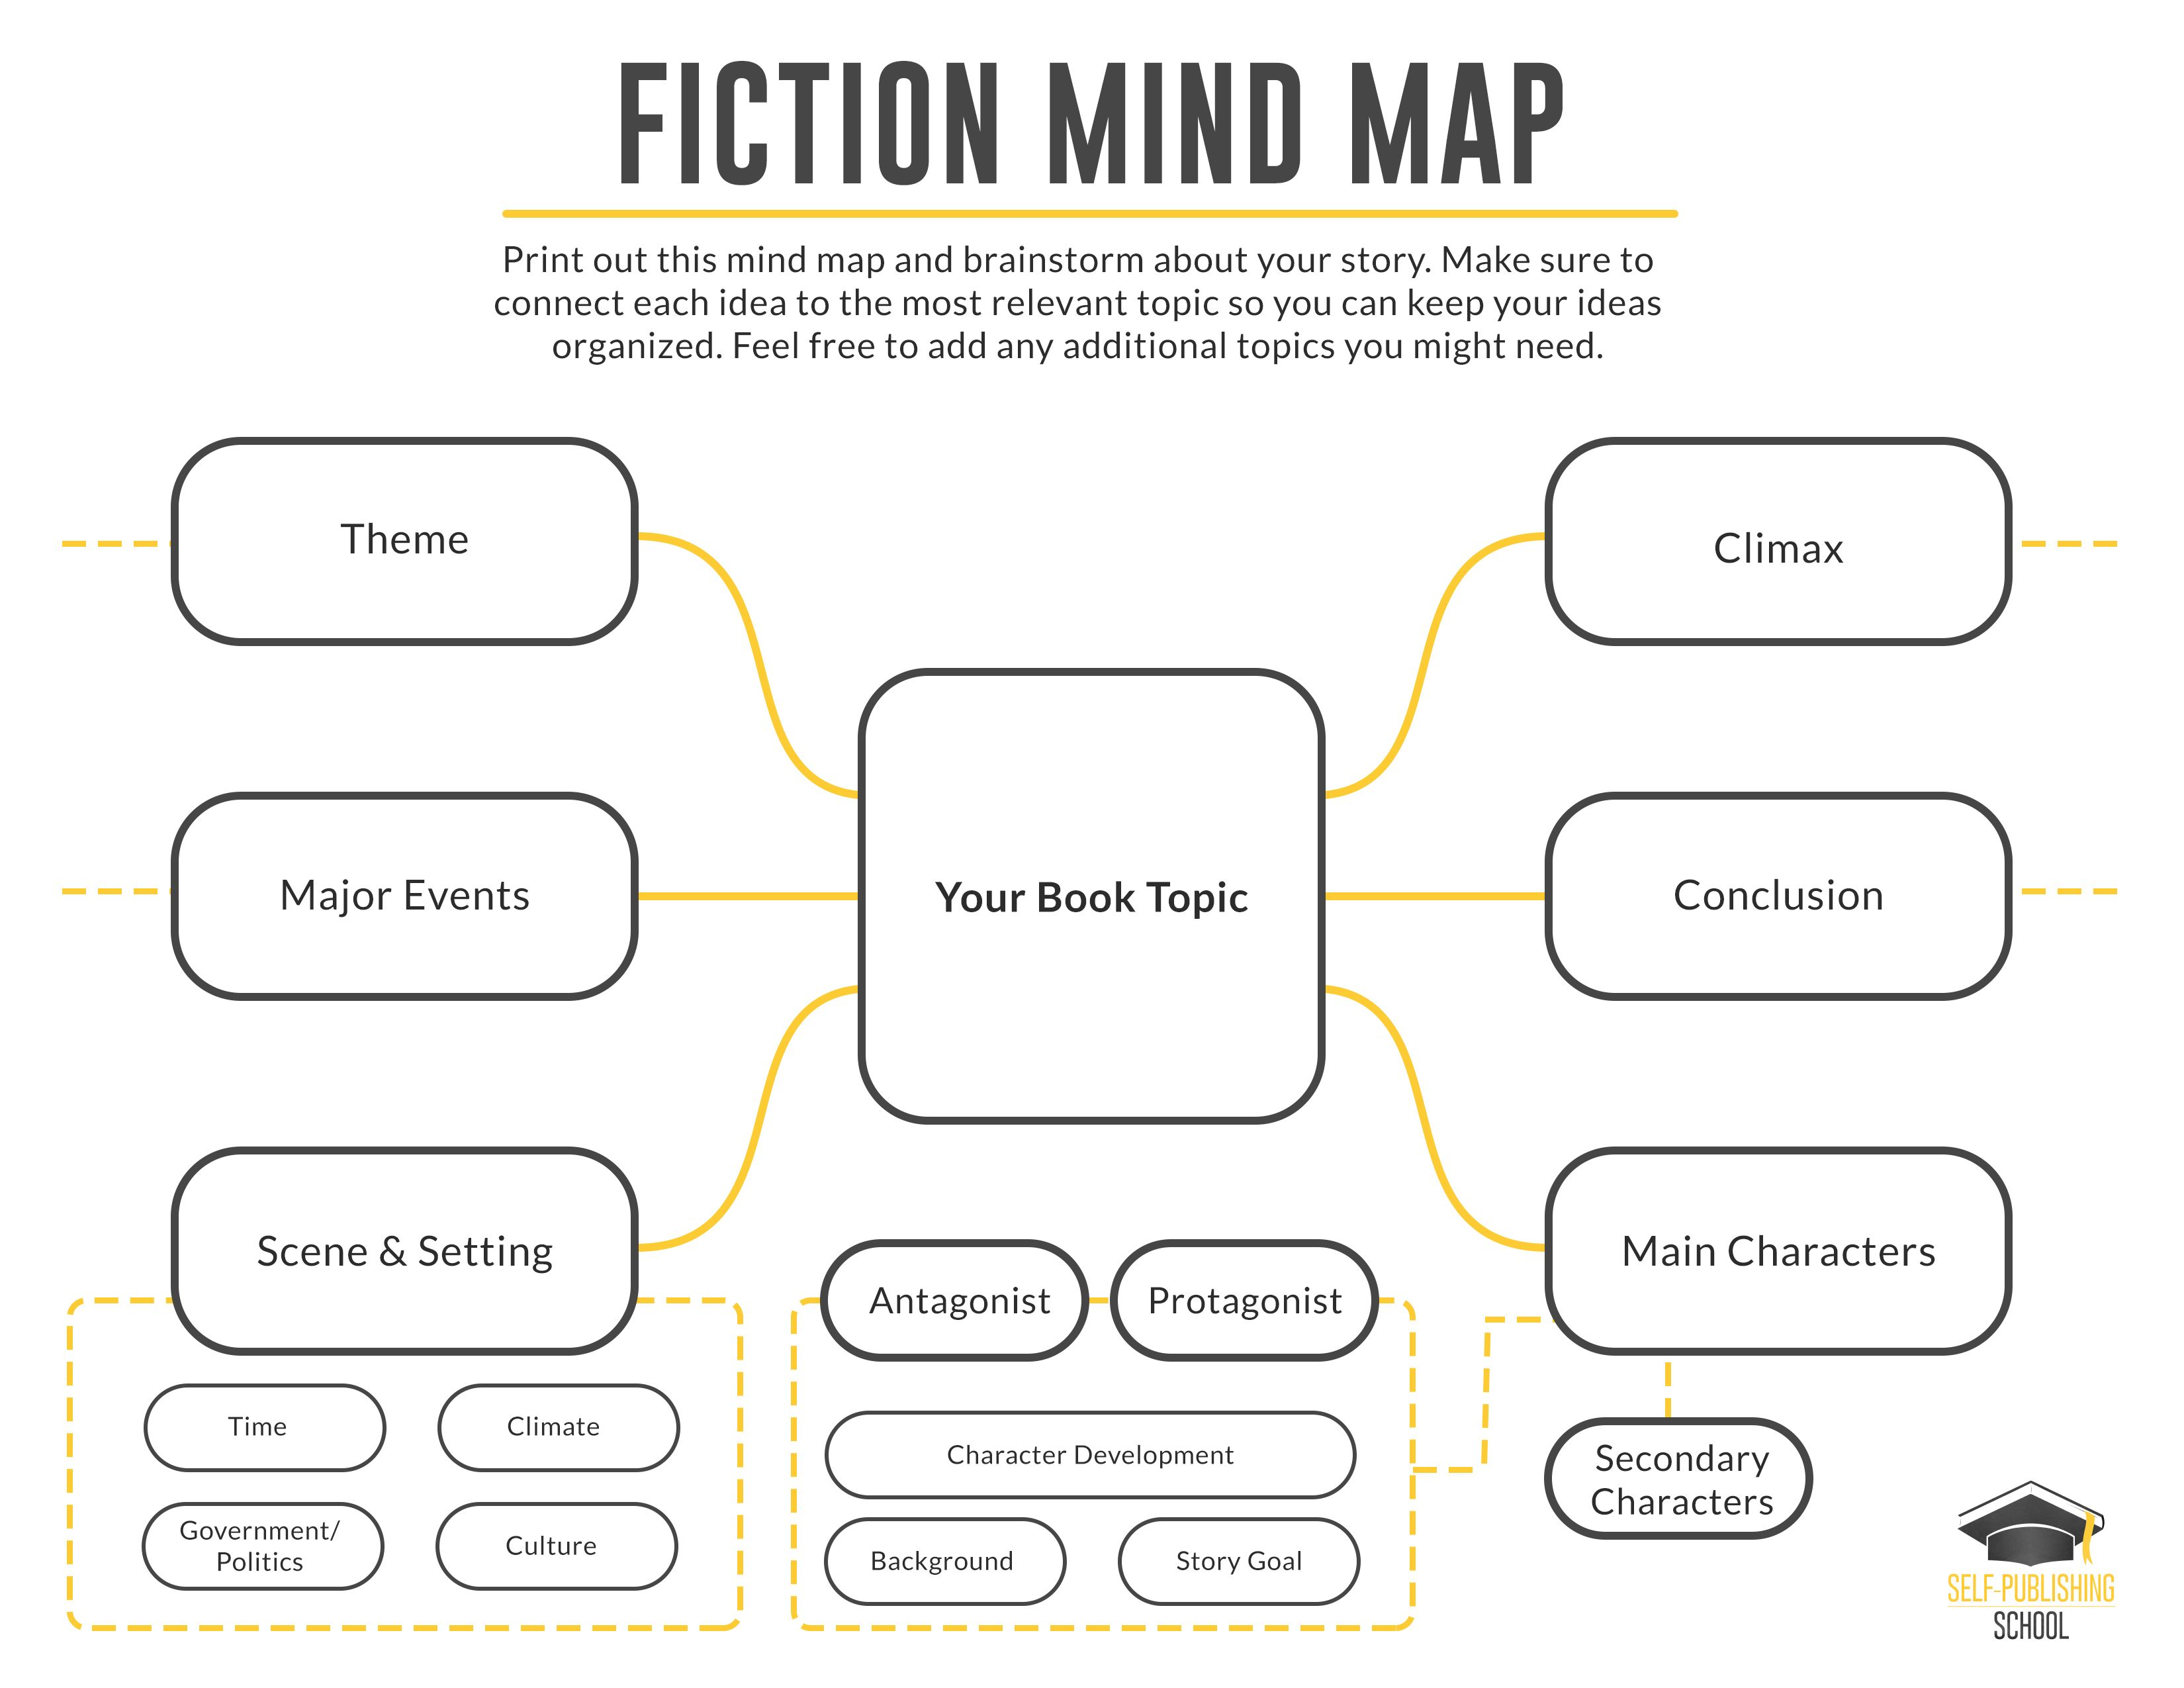 Outline A Book Using The Bookmap Template